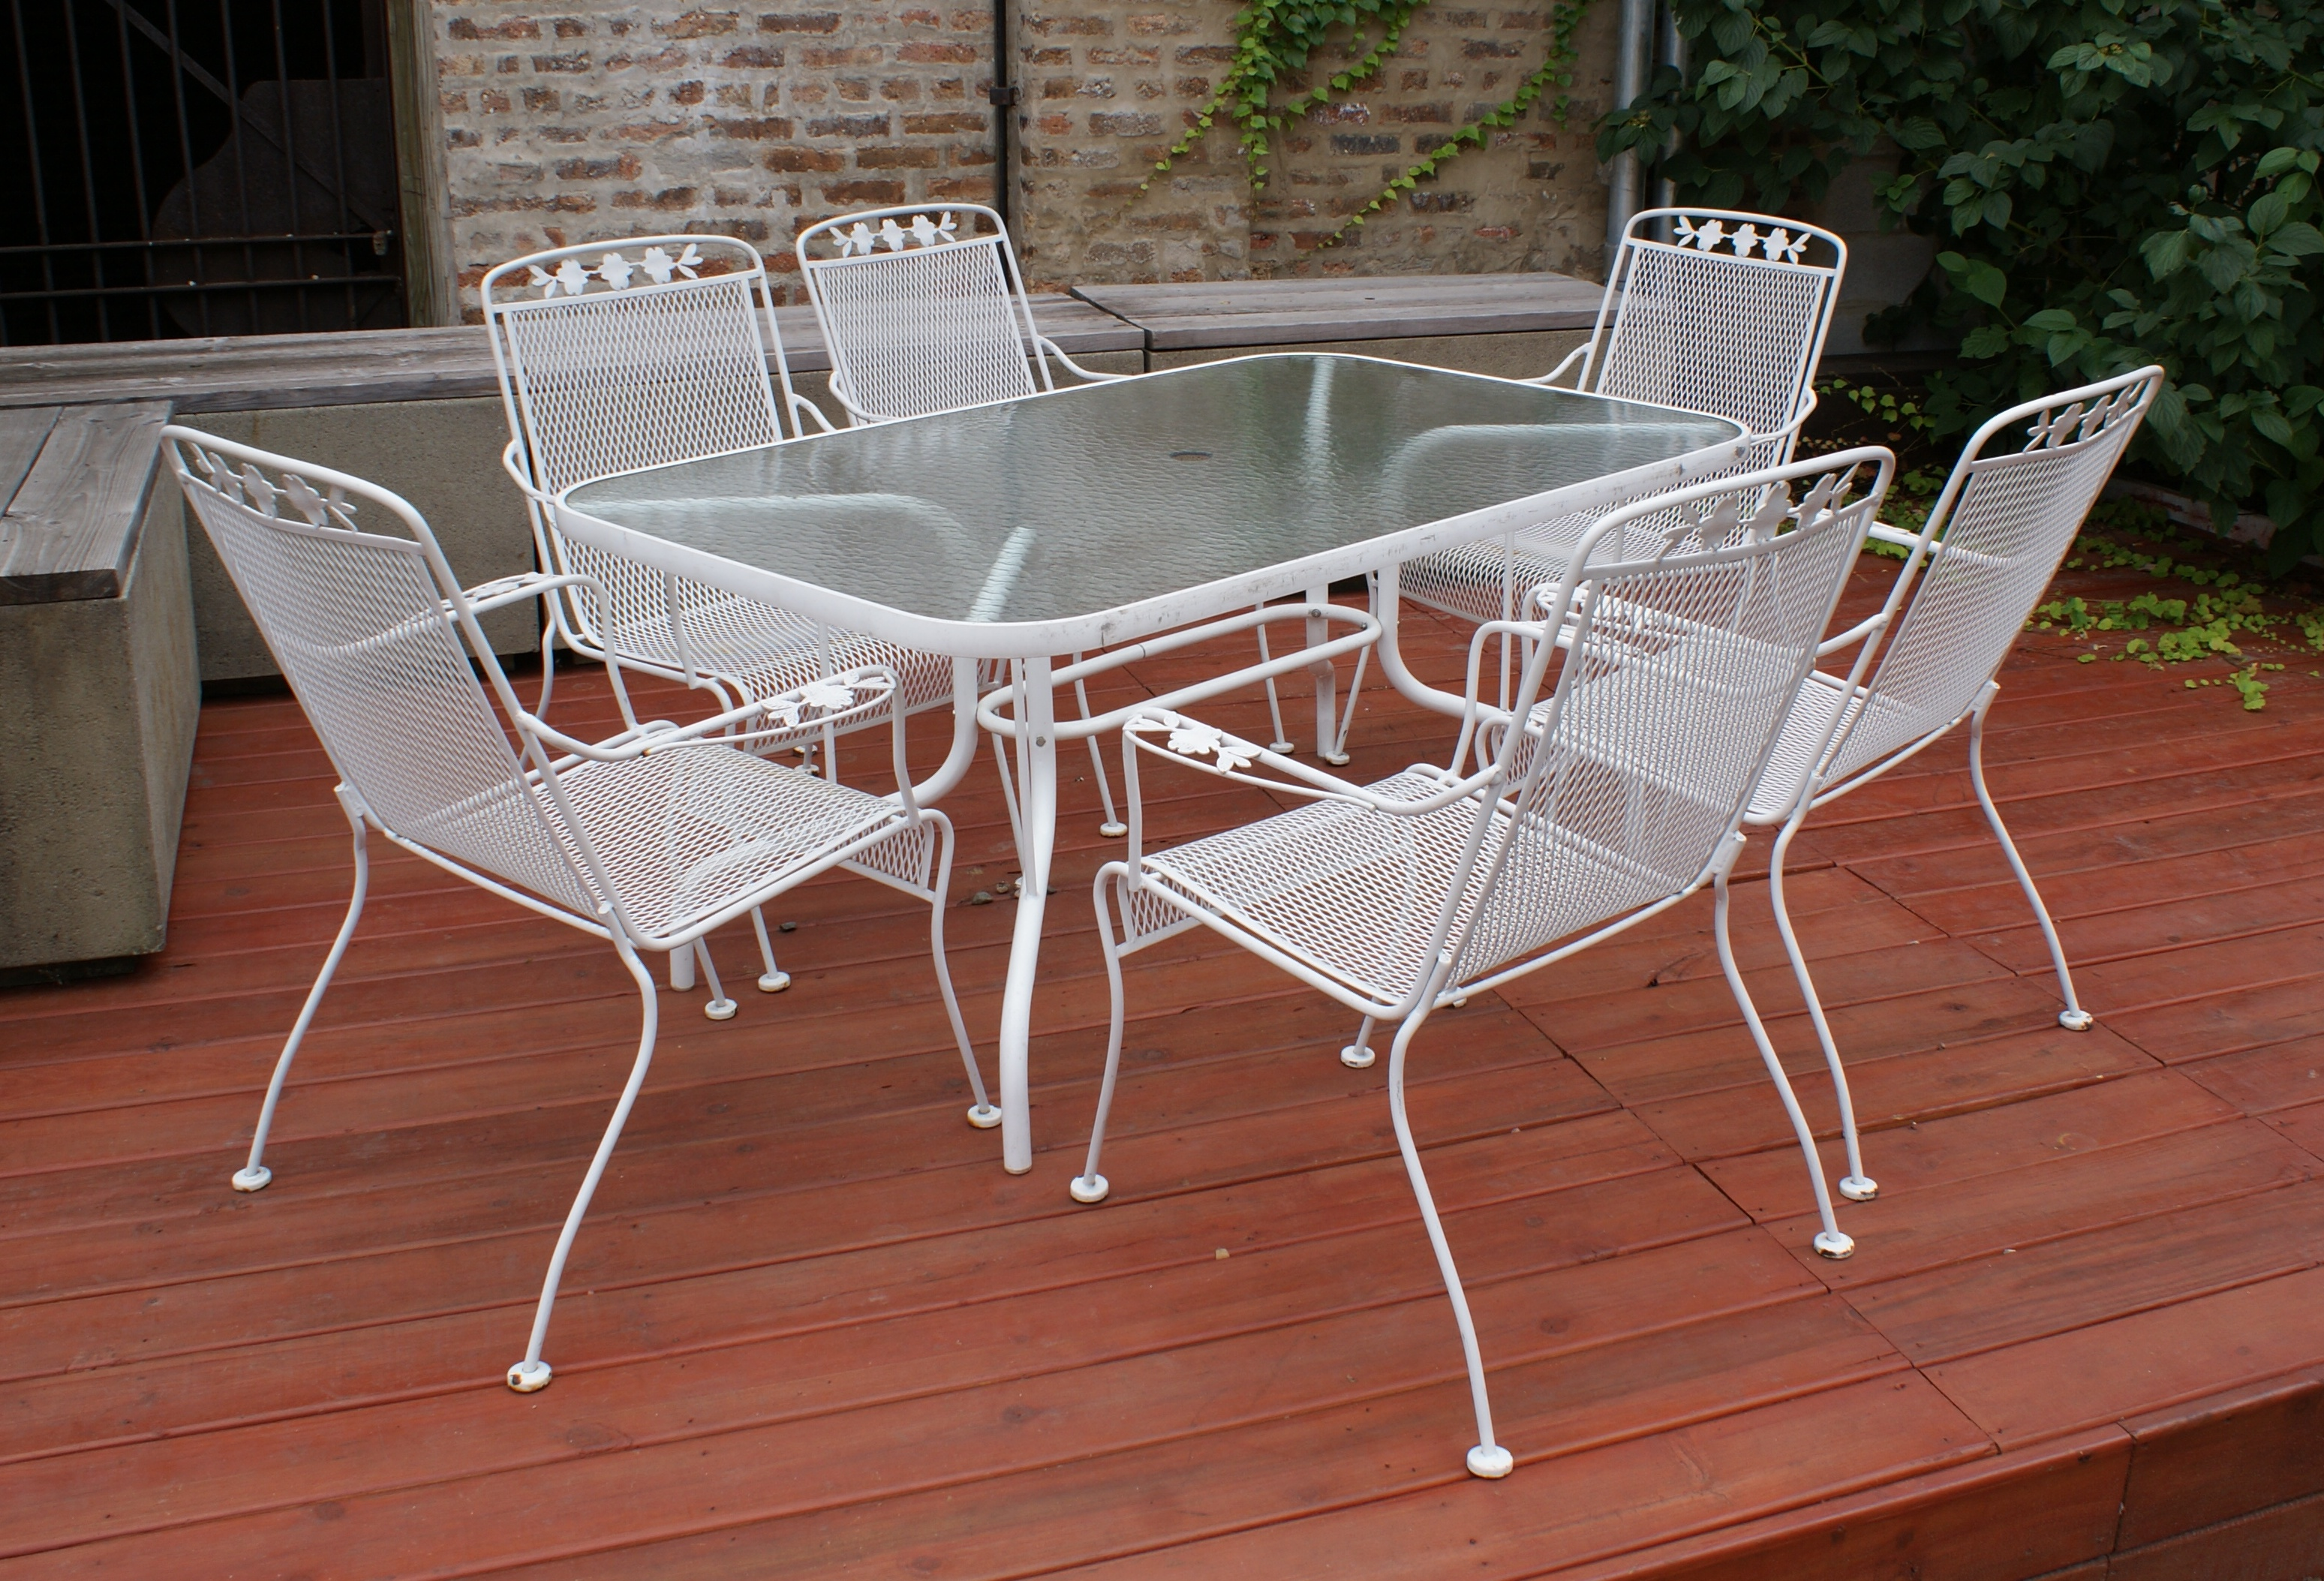 that set to top iron round home added going exterior backyard seats patio adore ideas decorating metal for dining and with black design table terrific simple you are glass chairs